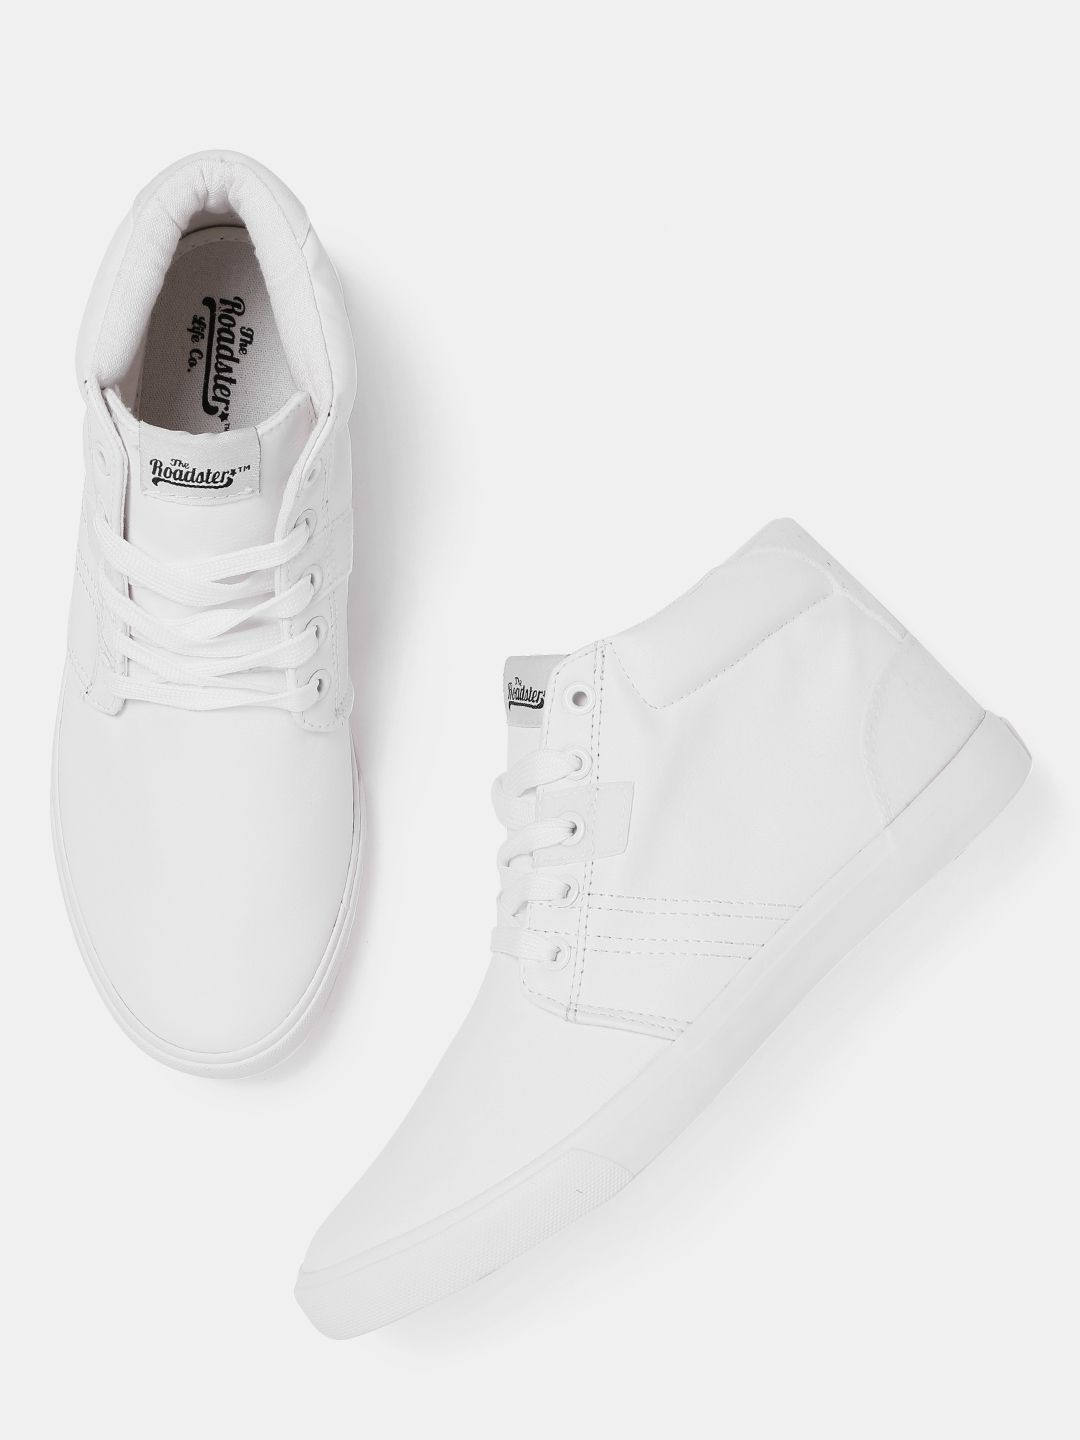 Buy Roadster Men White Solid Leather